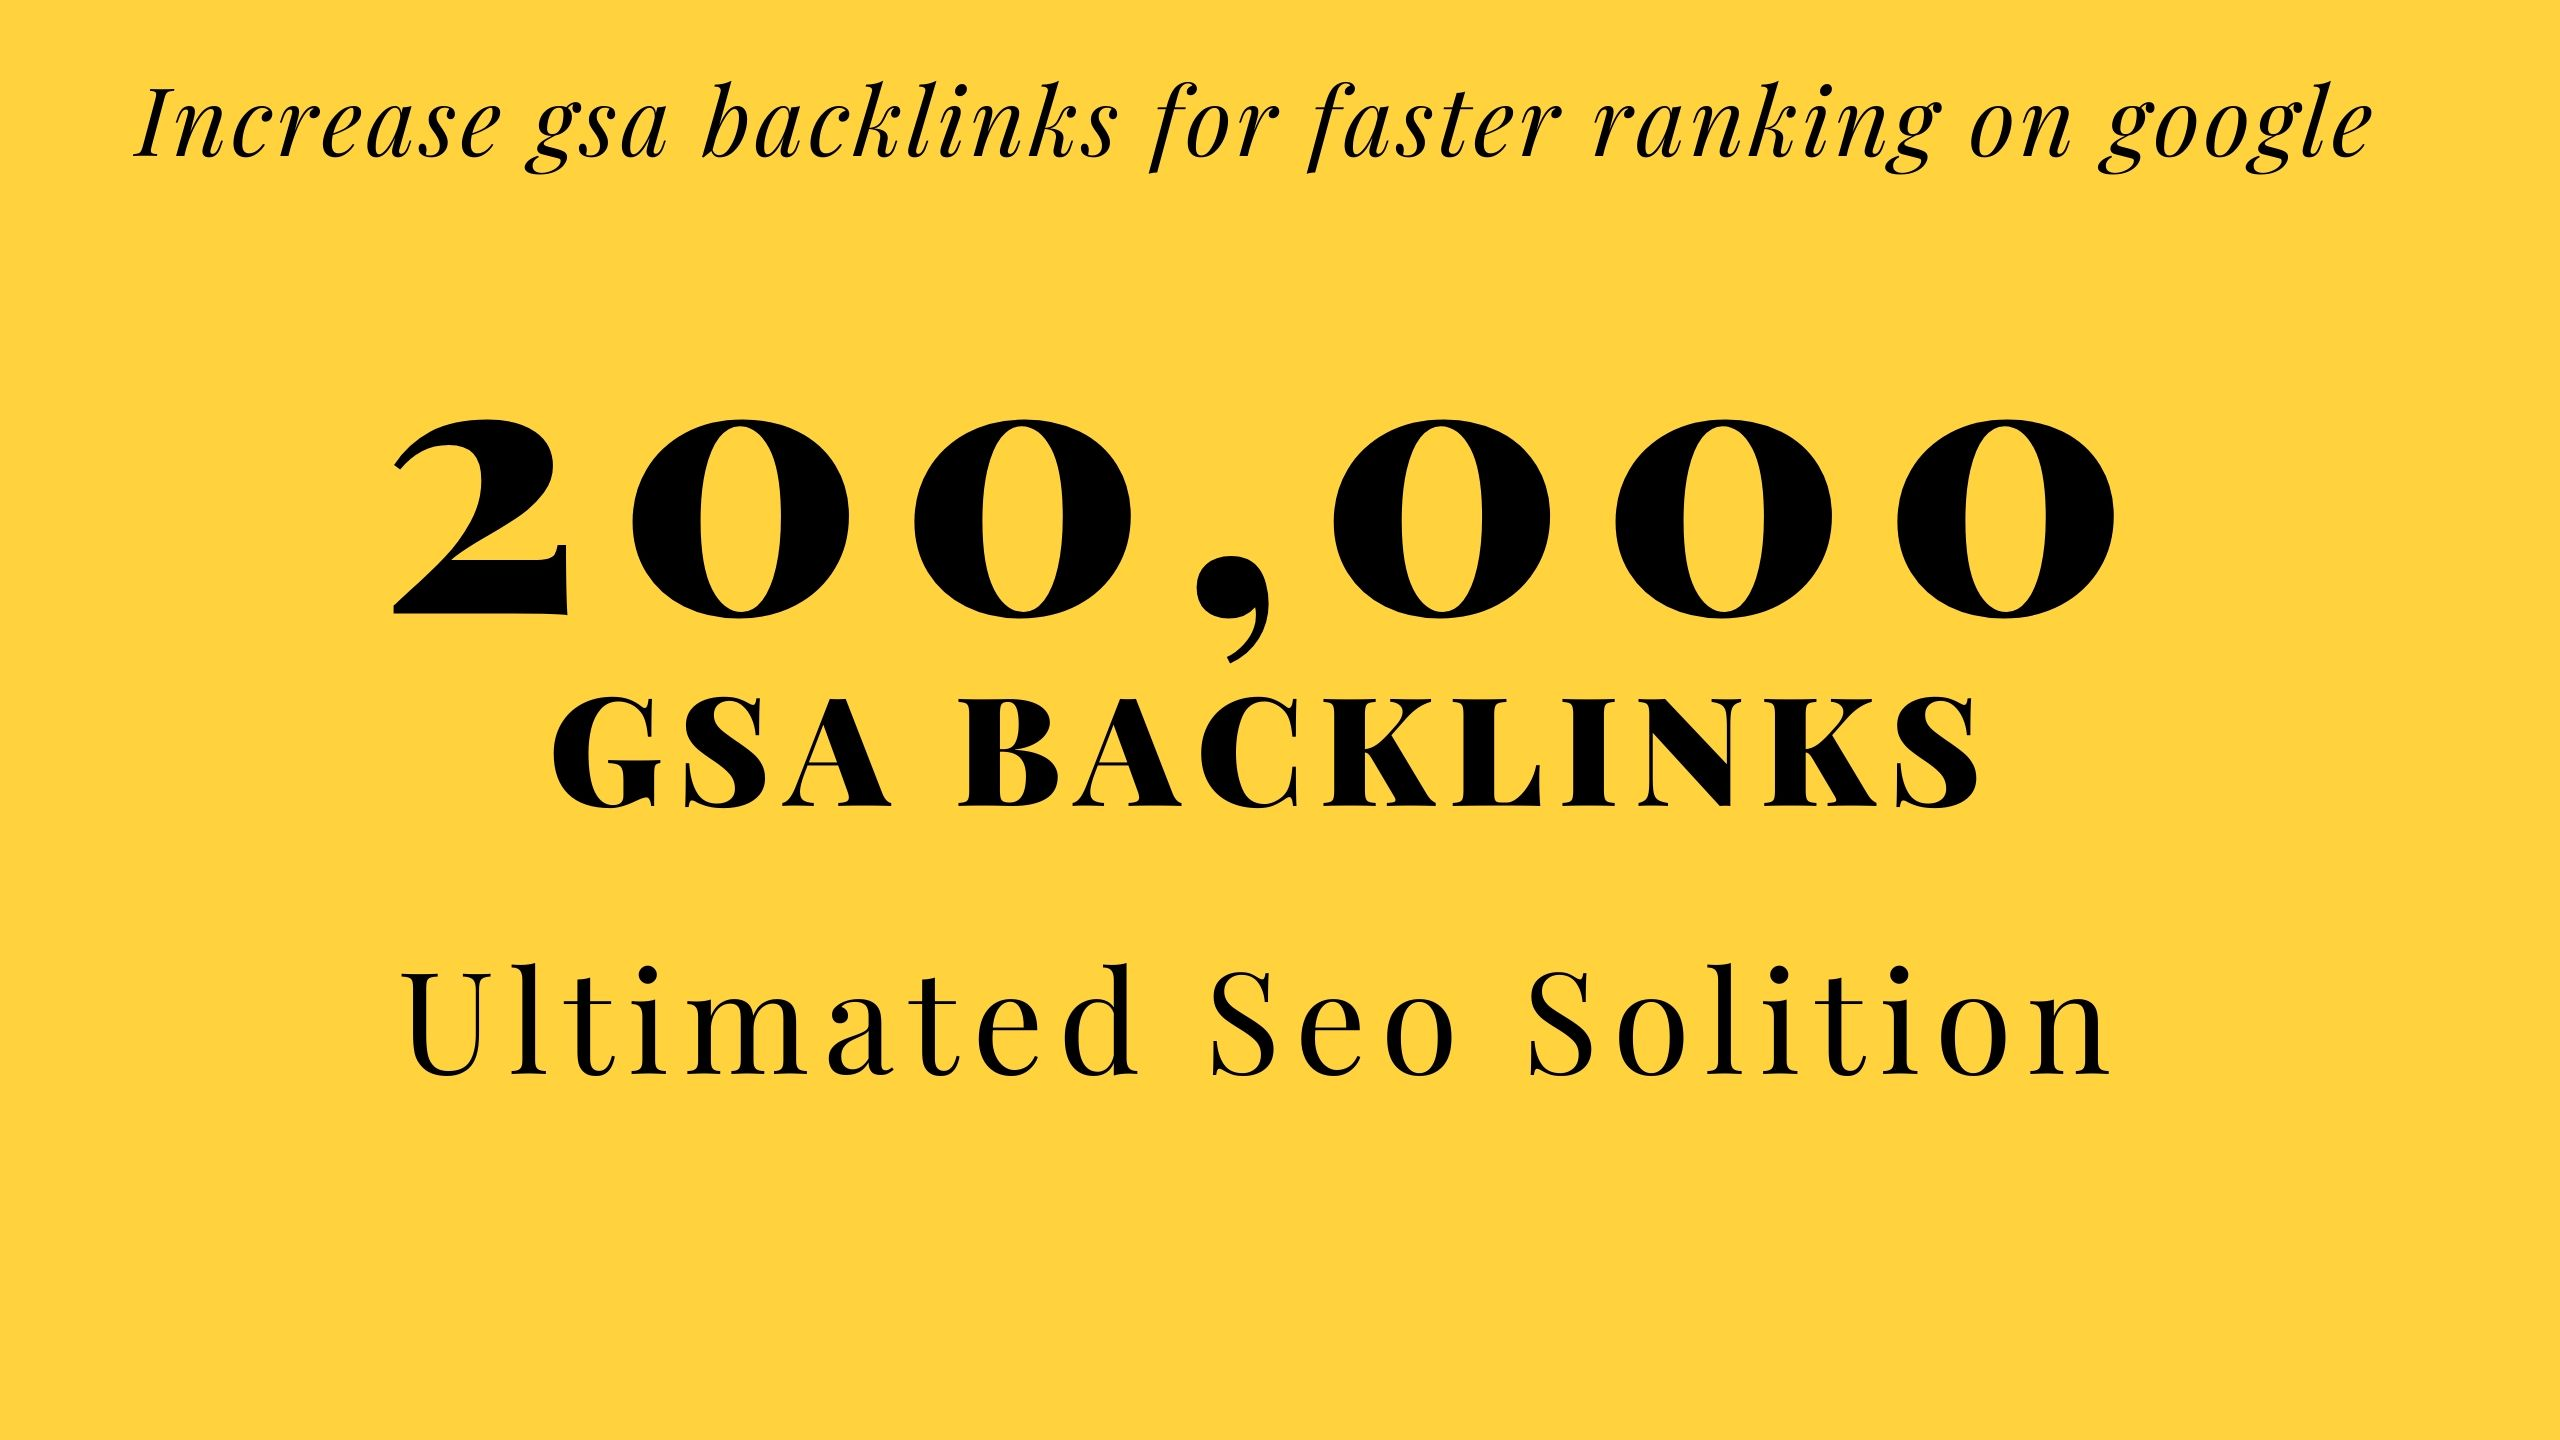 I will build 200,000 GSA Backlinks for faster ranking on your web page